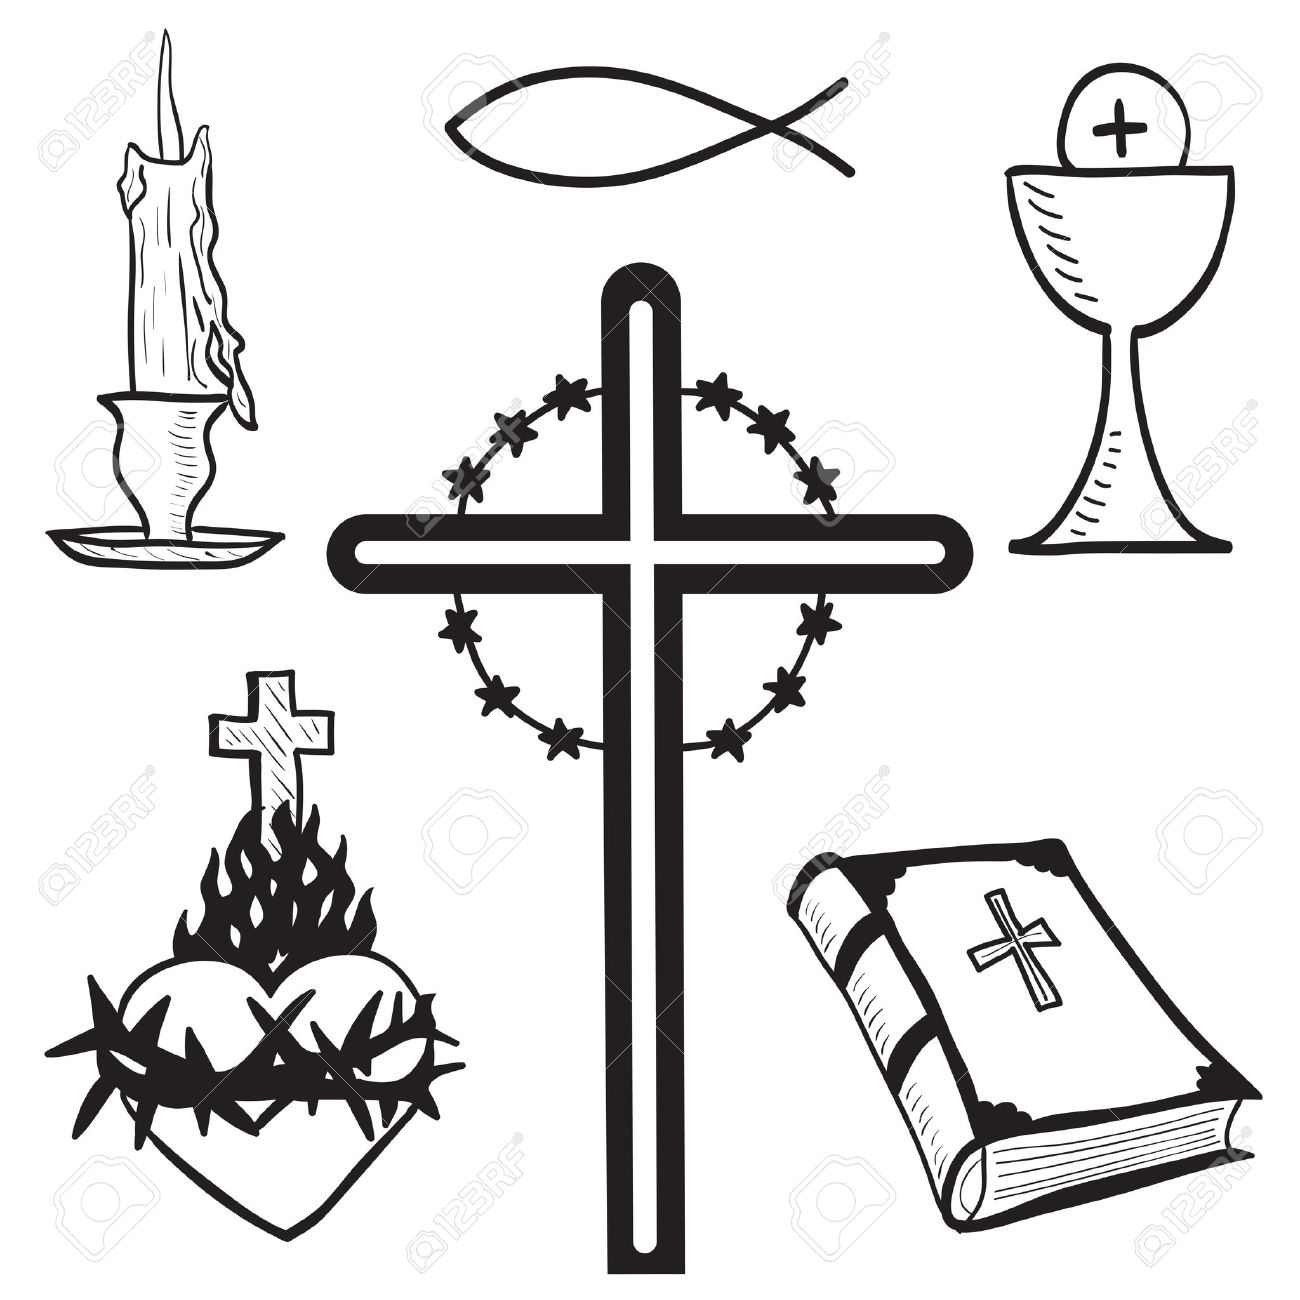 Christian hand drawn symbols illustration candle cross bible christian hand drawn symbols illustration candle cross bible fish heart buycottarizona